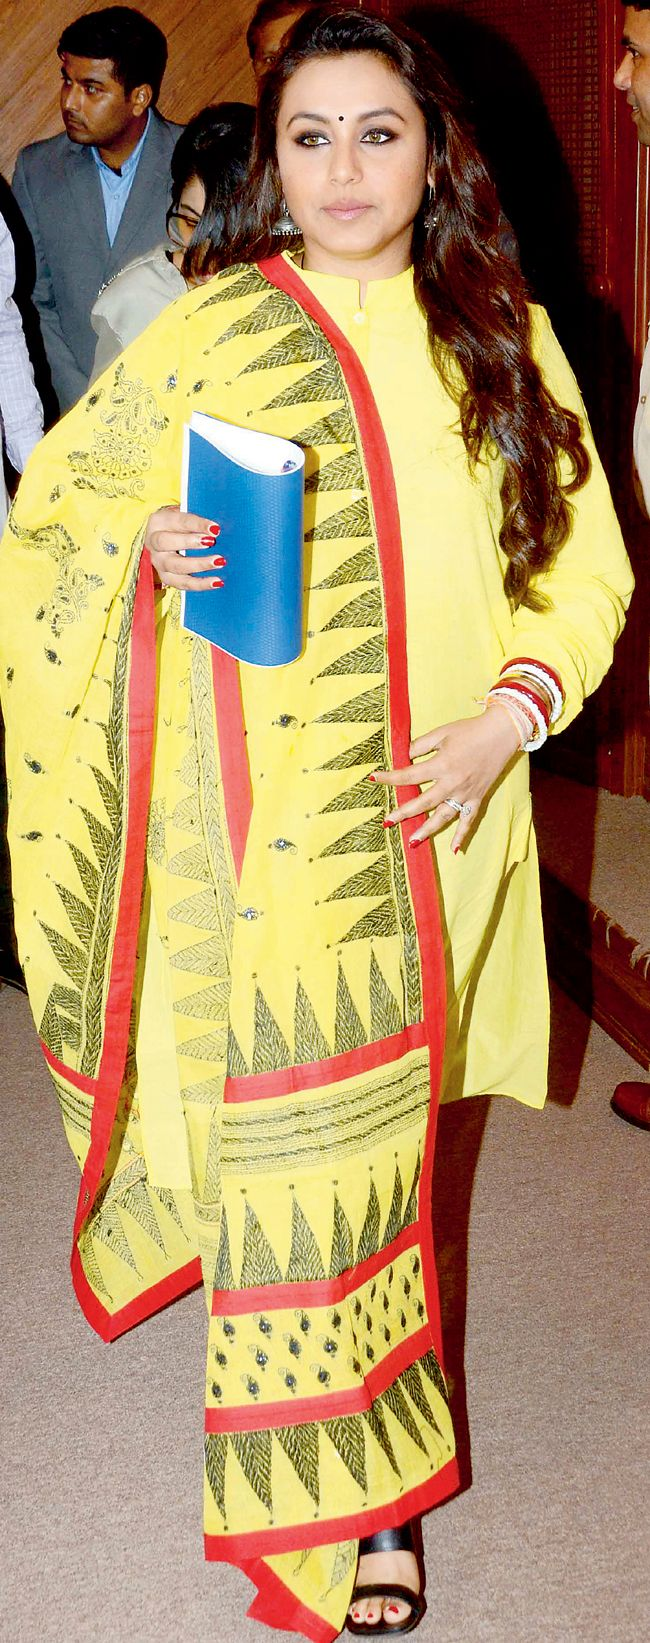 Rani Mukerji at the launch of a Mumbai traffic police initiative 'Make Way for Ambulance'. #Bollywood #Fashion #Style #Beauty